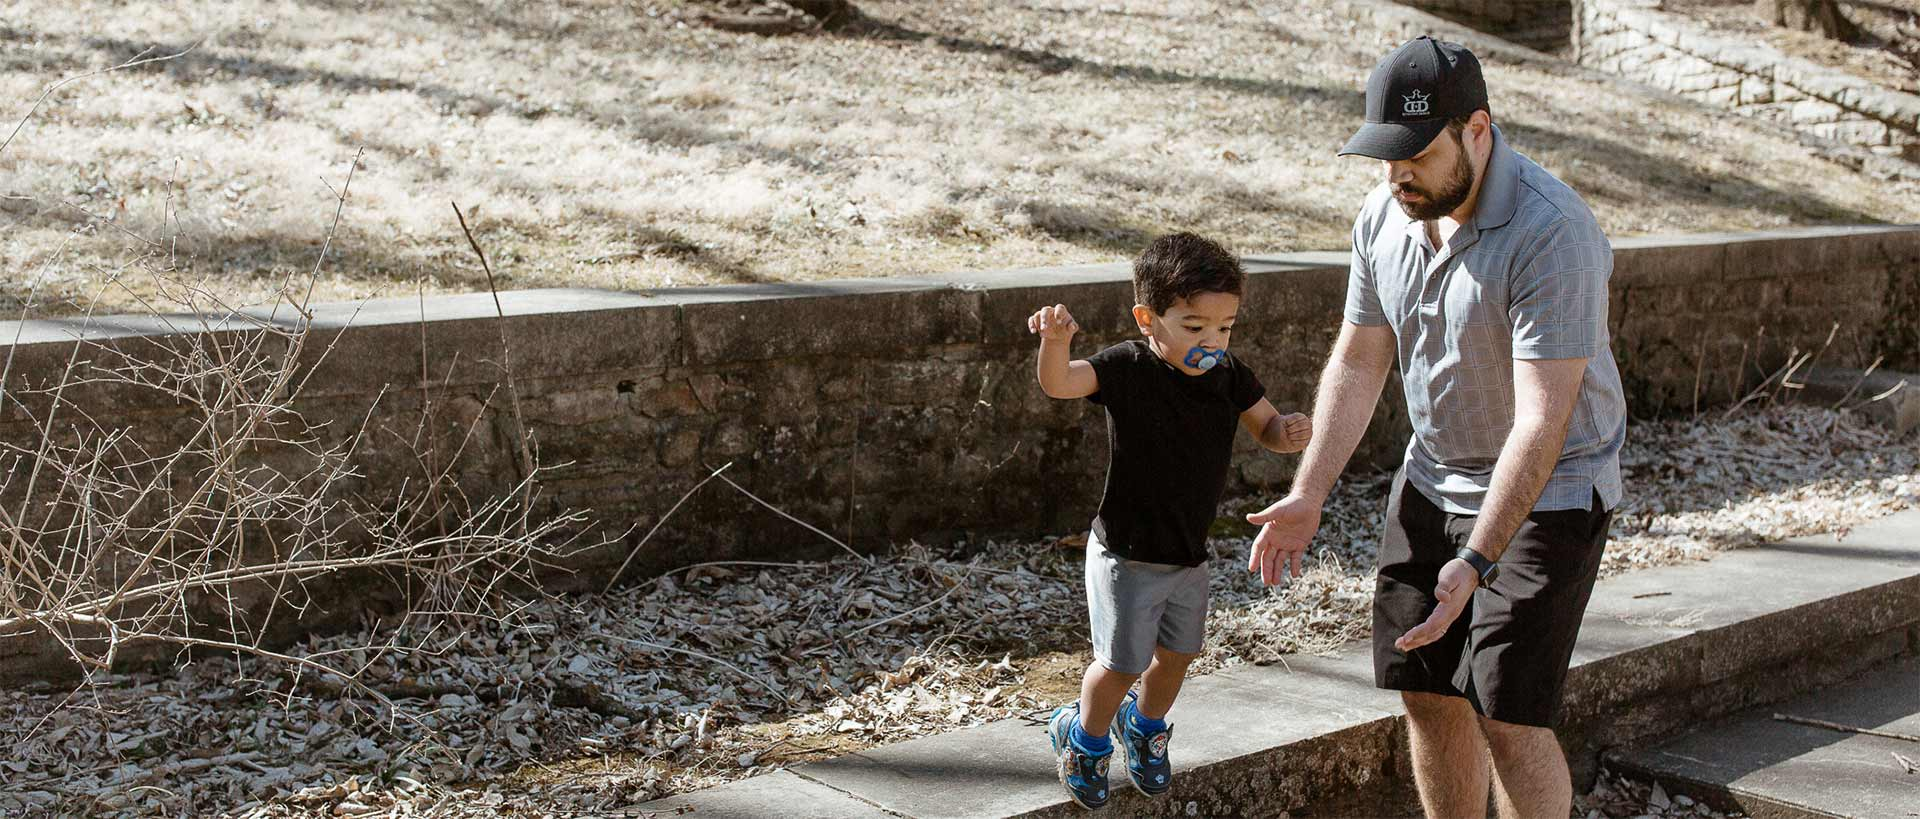 After losing weight with Profile by Sanford, Travis has more energy to go for a walk with his son.